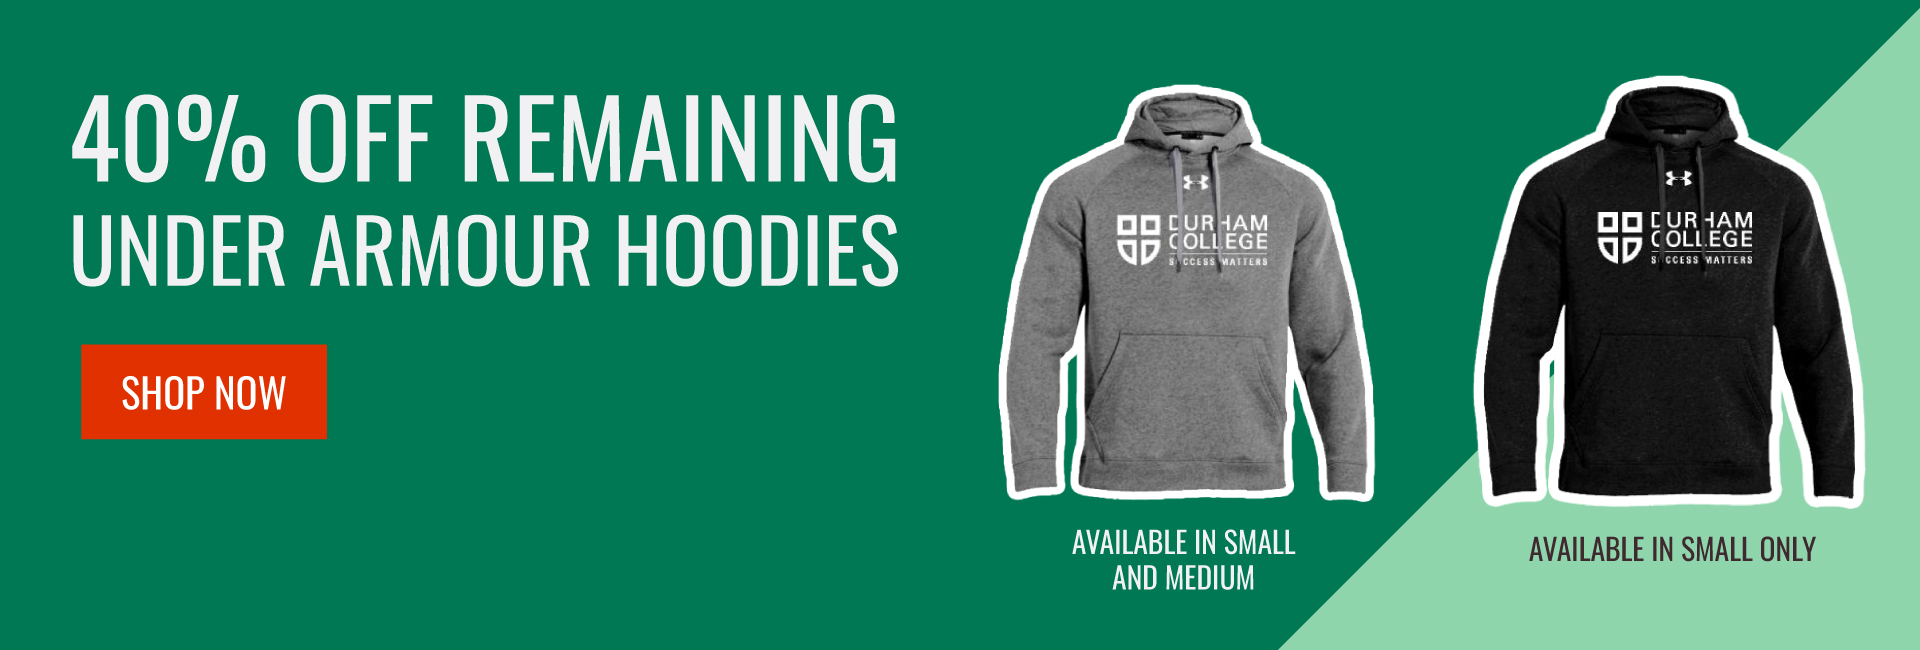 Remaining Under Armour Hoodies 40% off, select sizes only